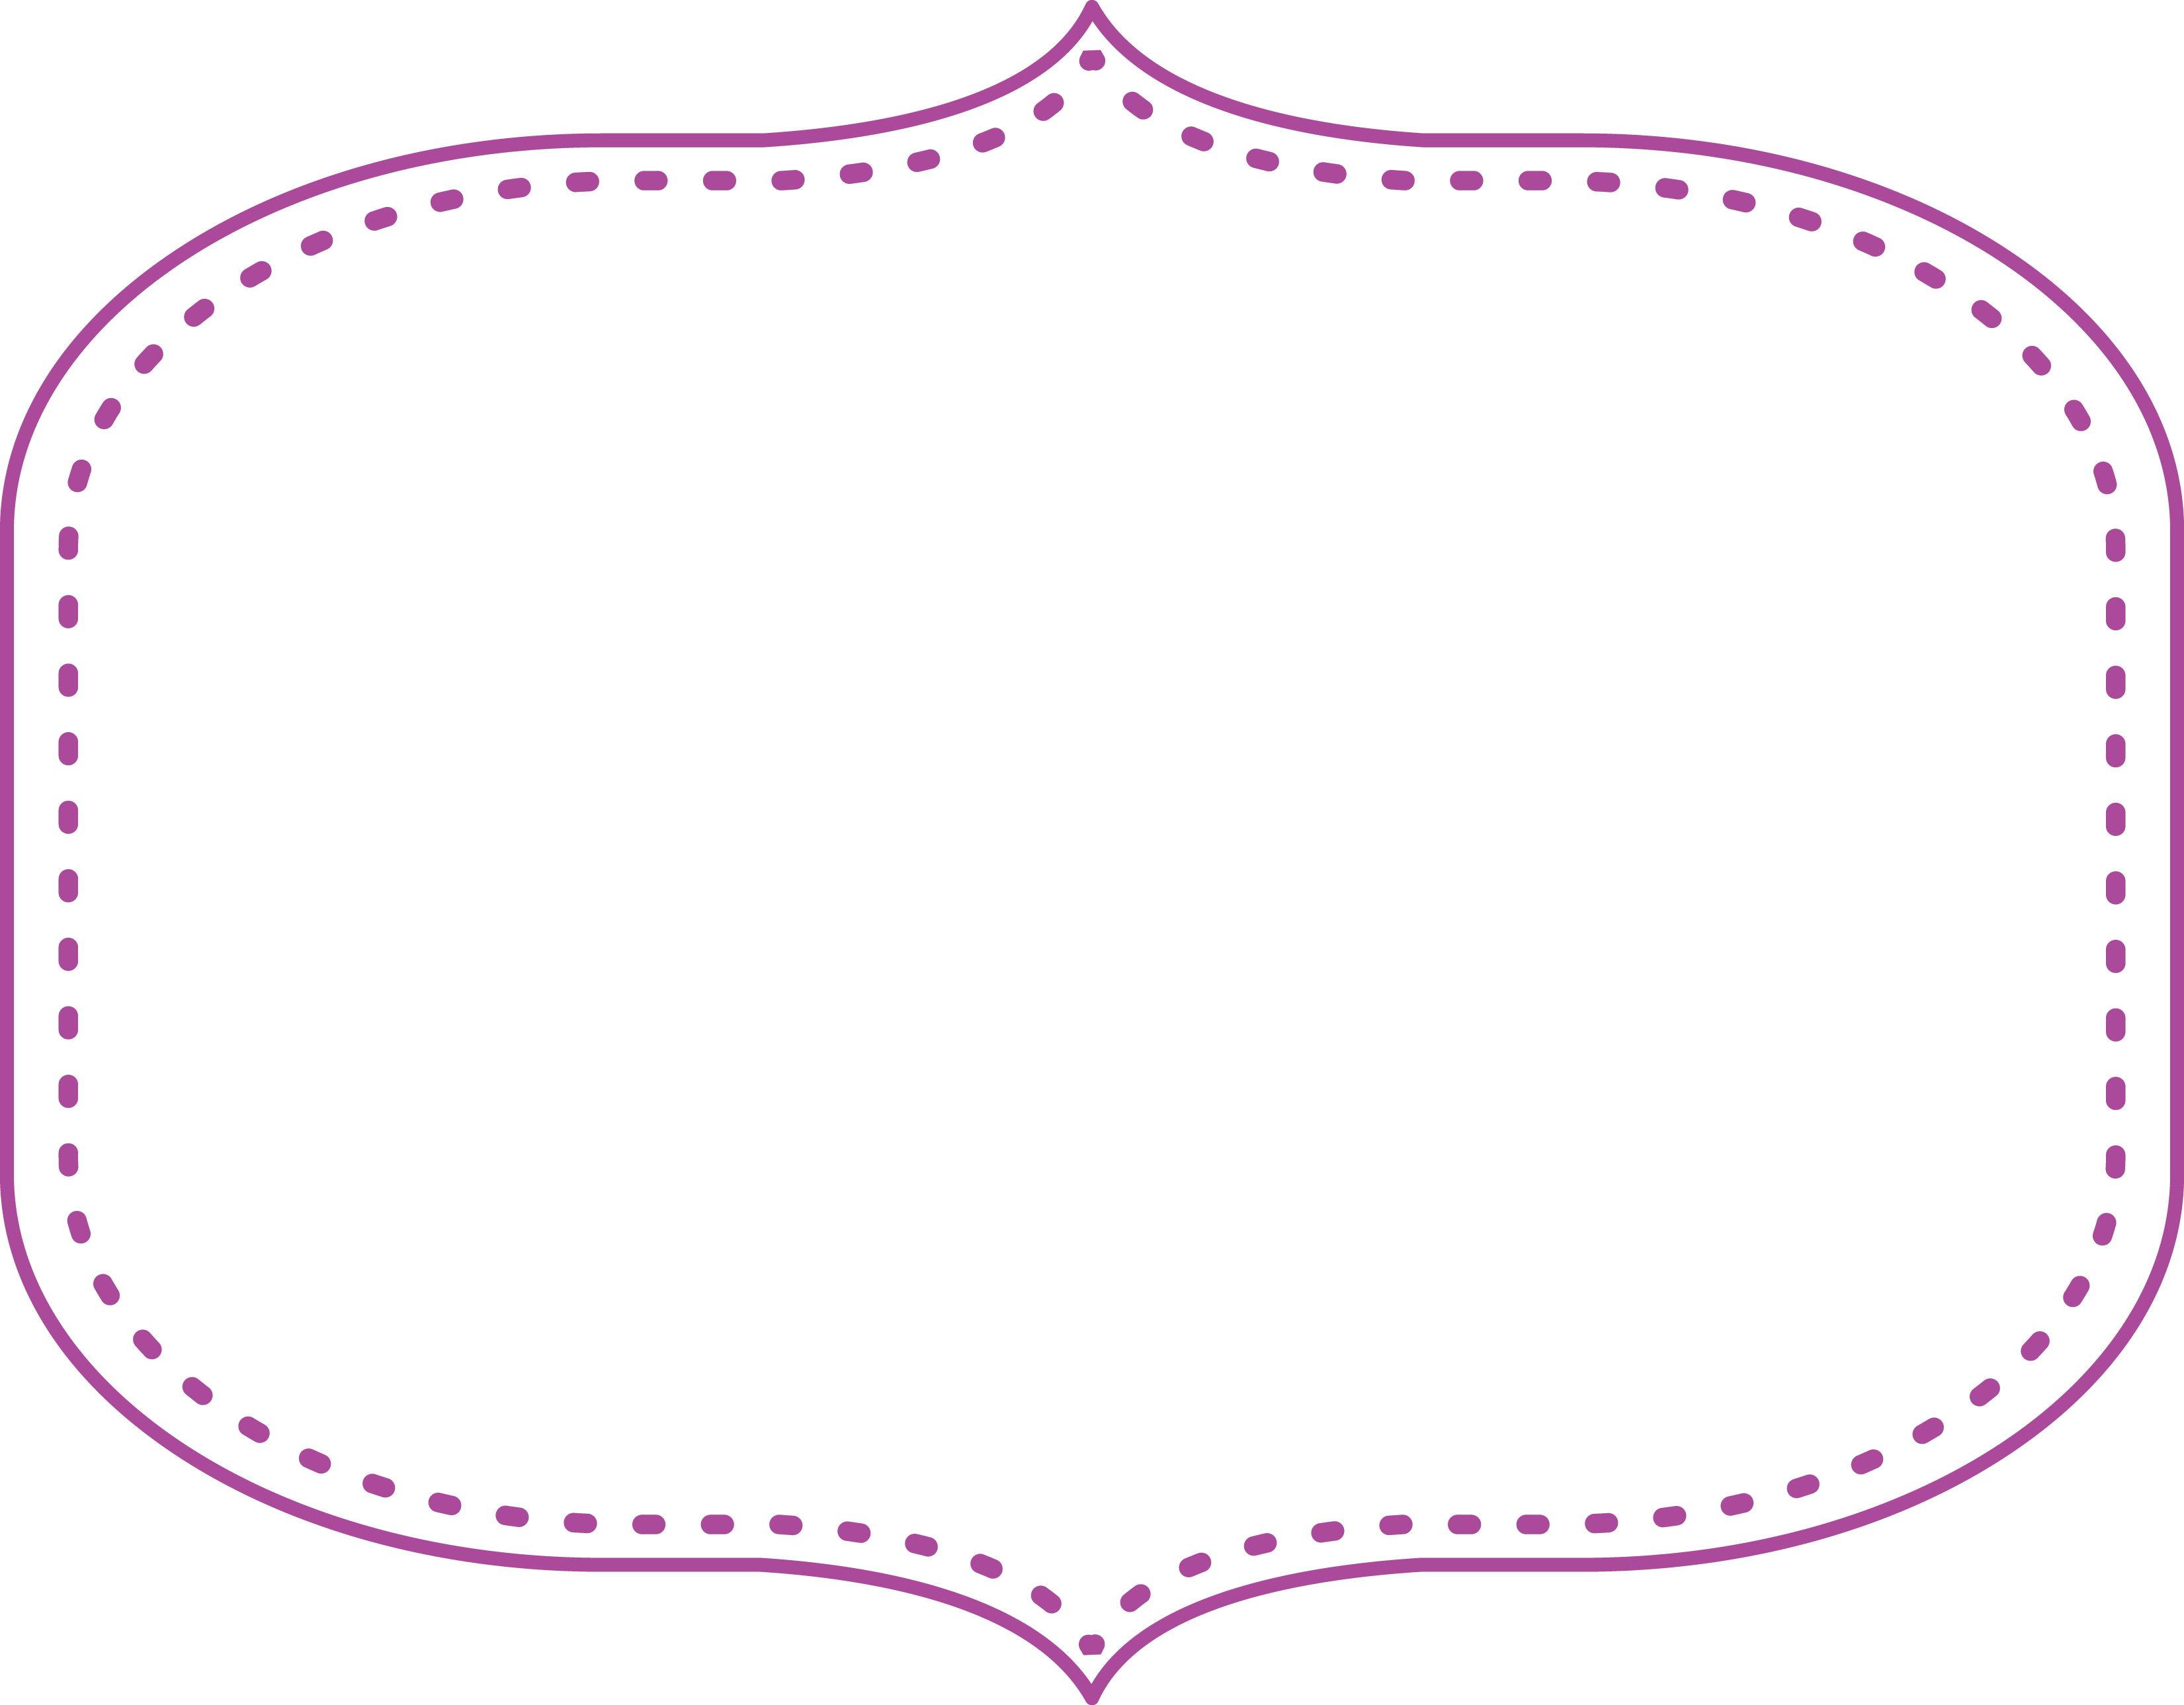 Label frame png. Images of frames spacehero